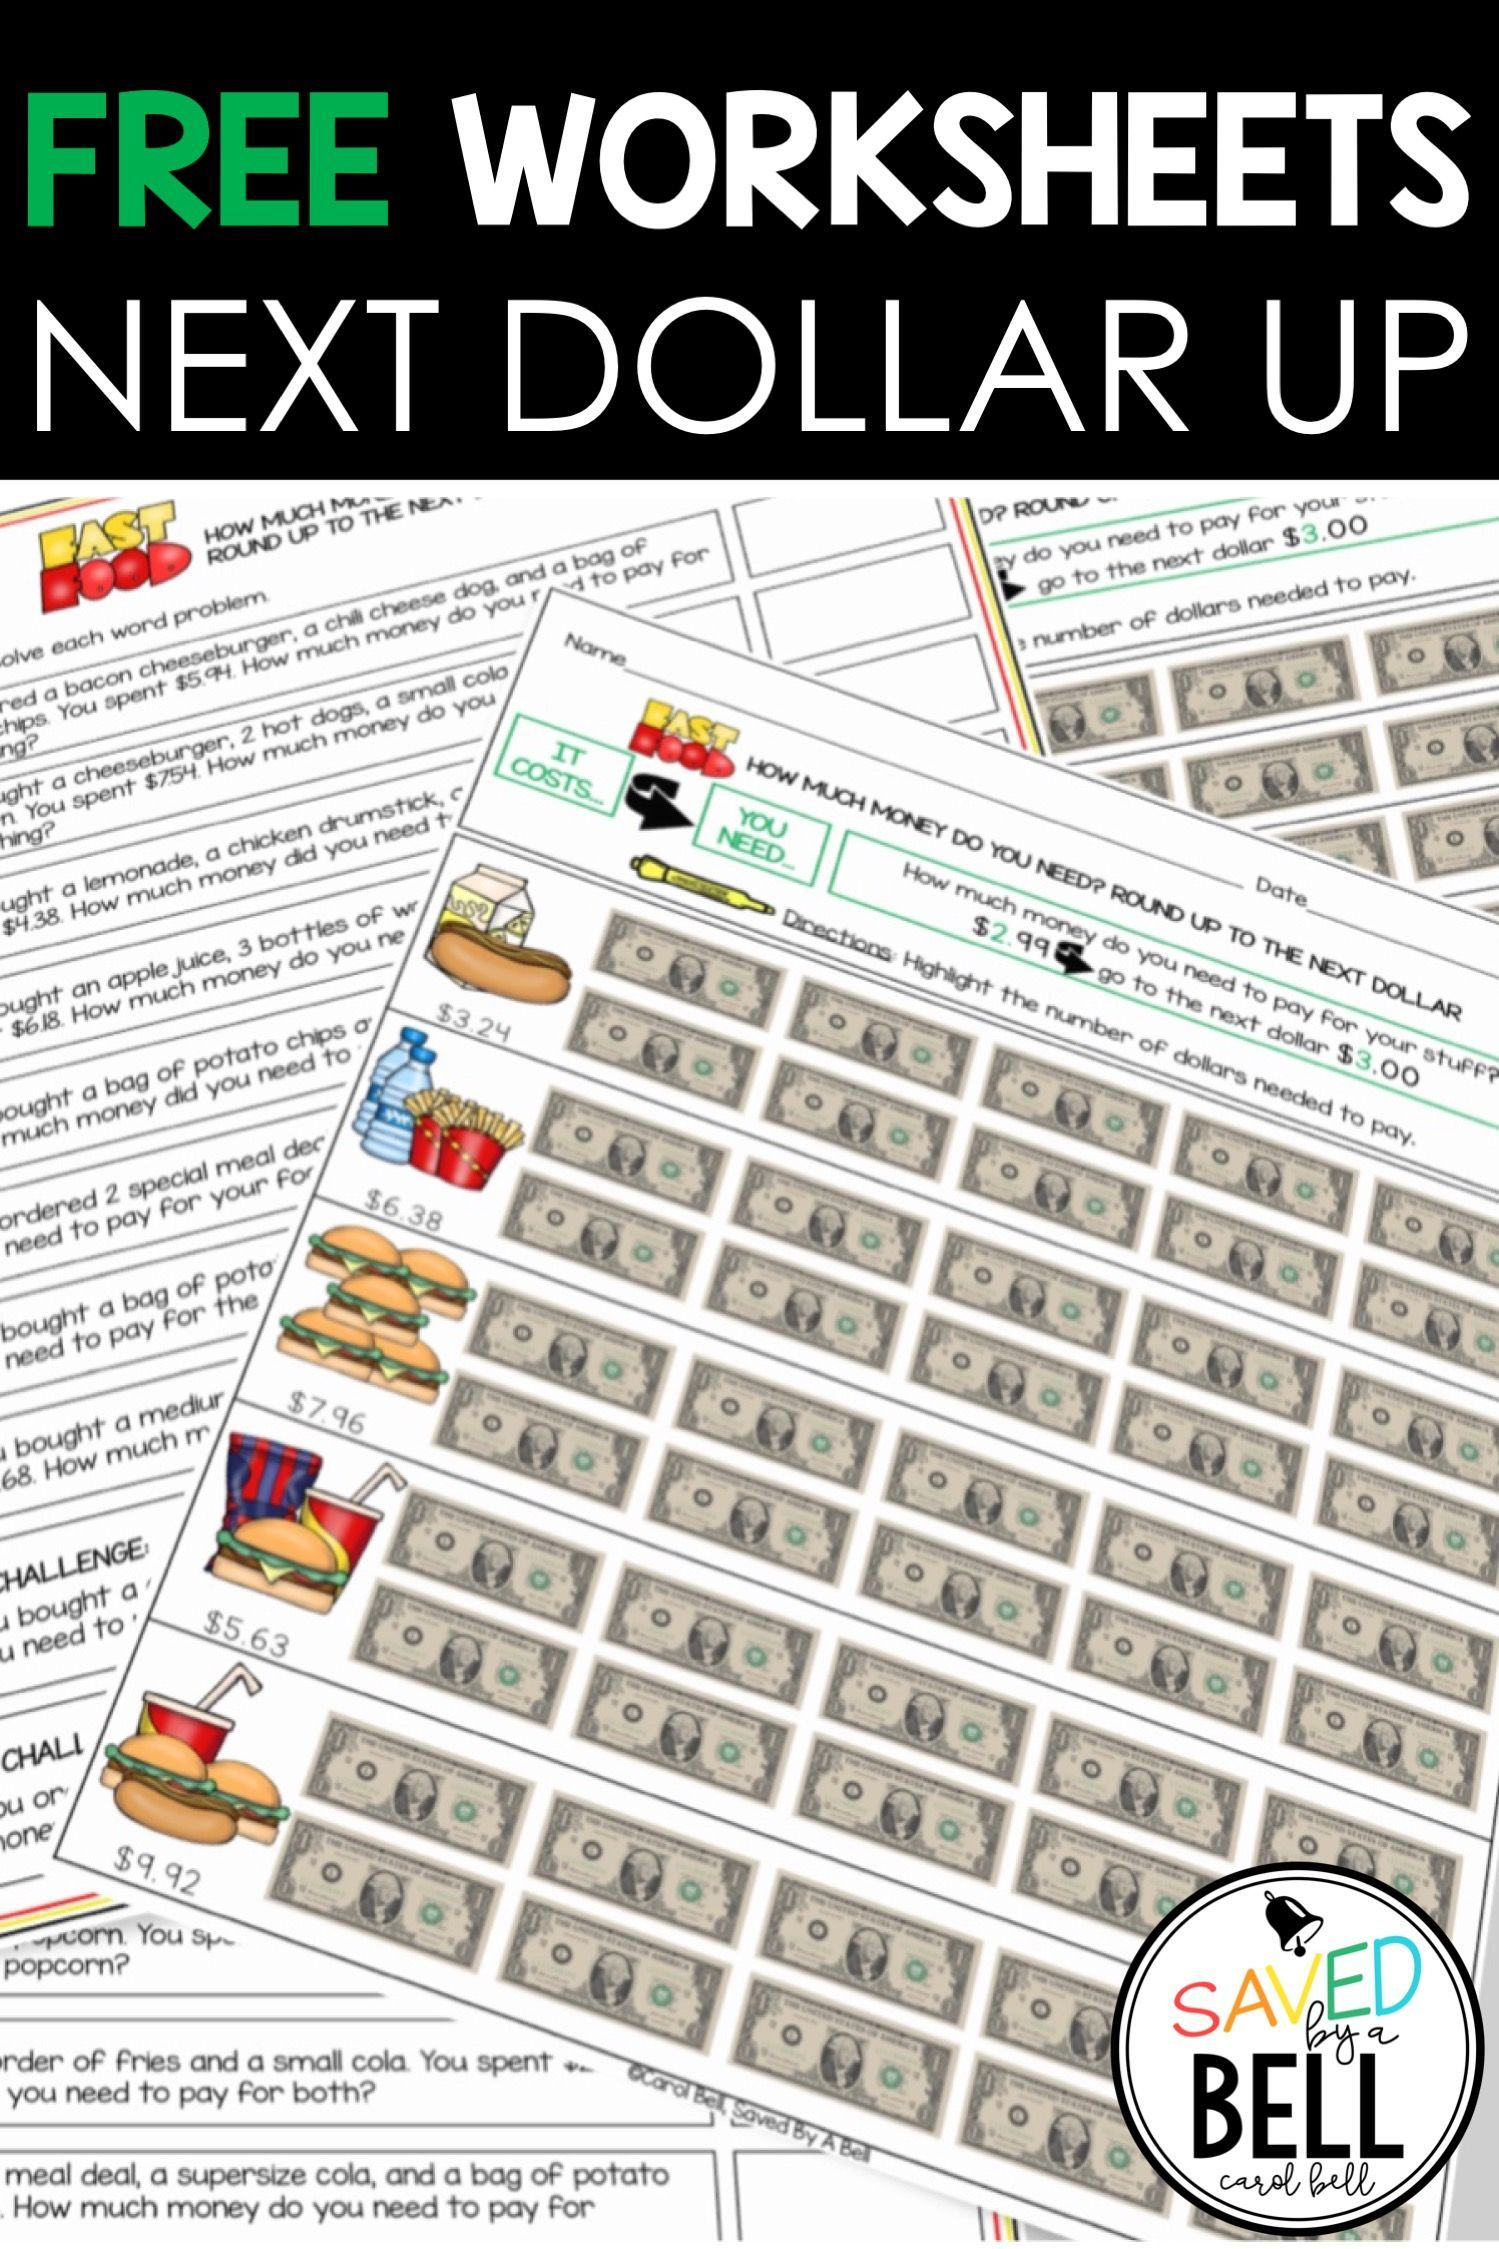 Free Next Dollar Up Worksheets Special Education Math Special Education Worksheets Life Skills Classroom [ 2249 x 1499 Pixel ]